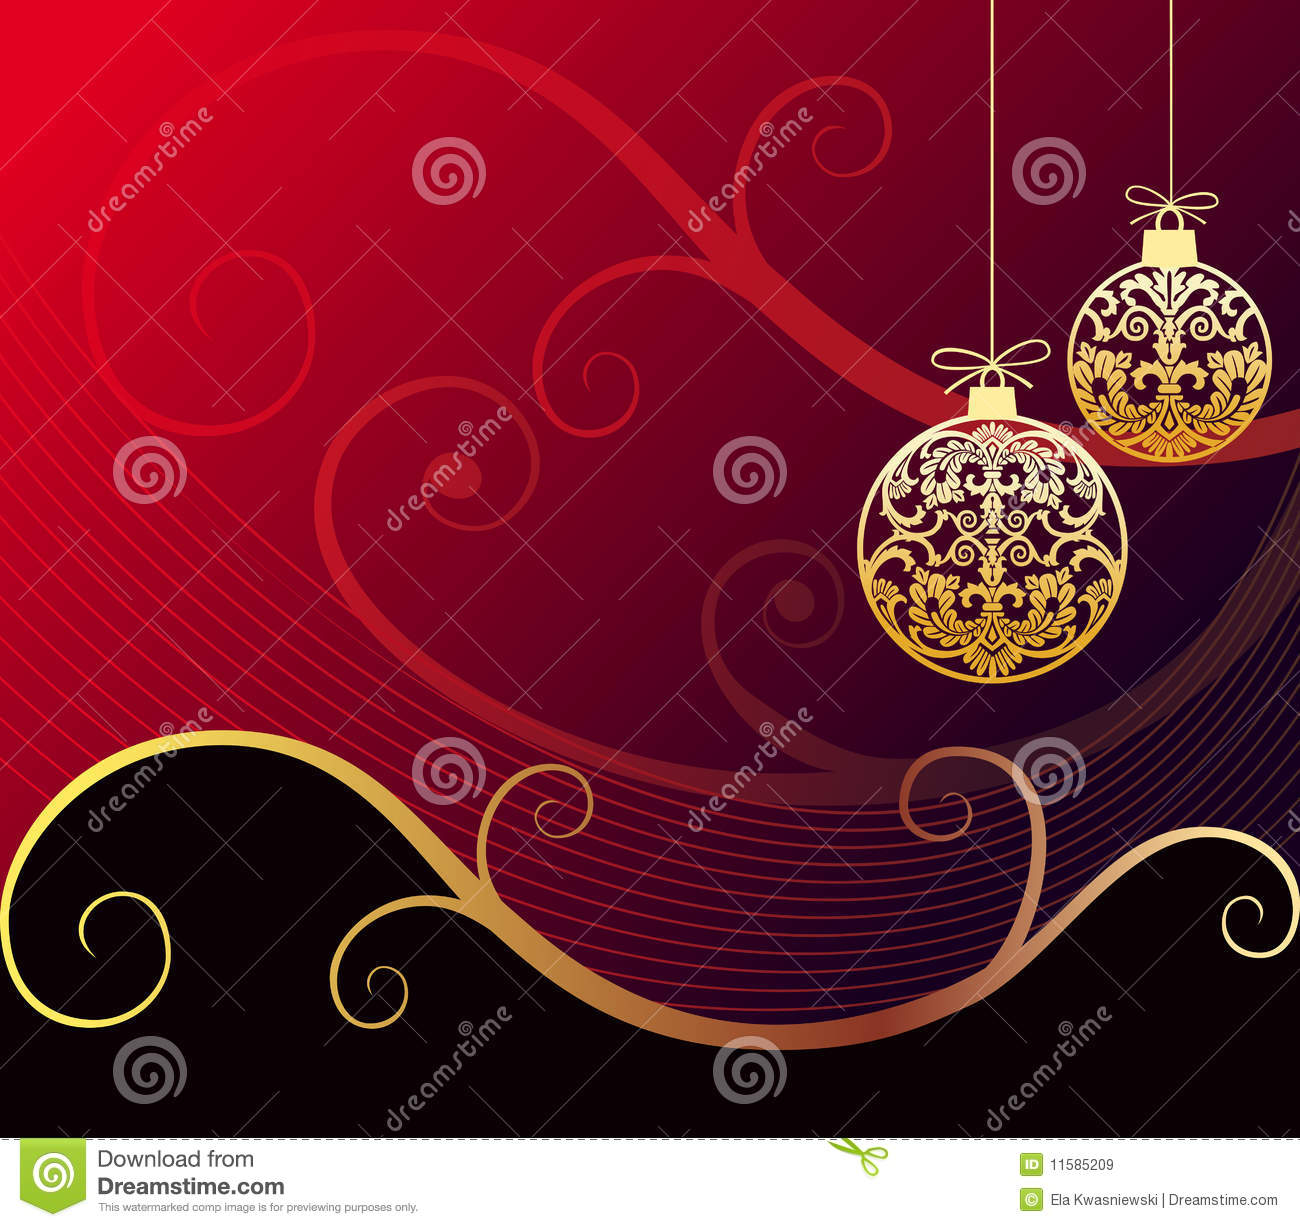 Baroque Christmas Royalty Free Stock Images - Image: 11585209